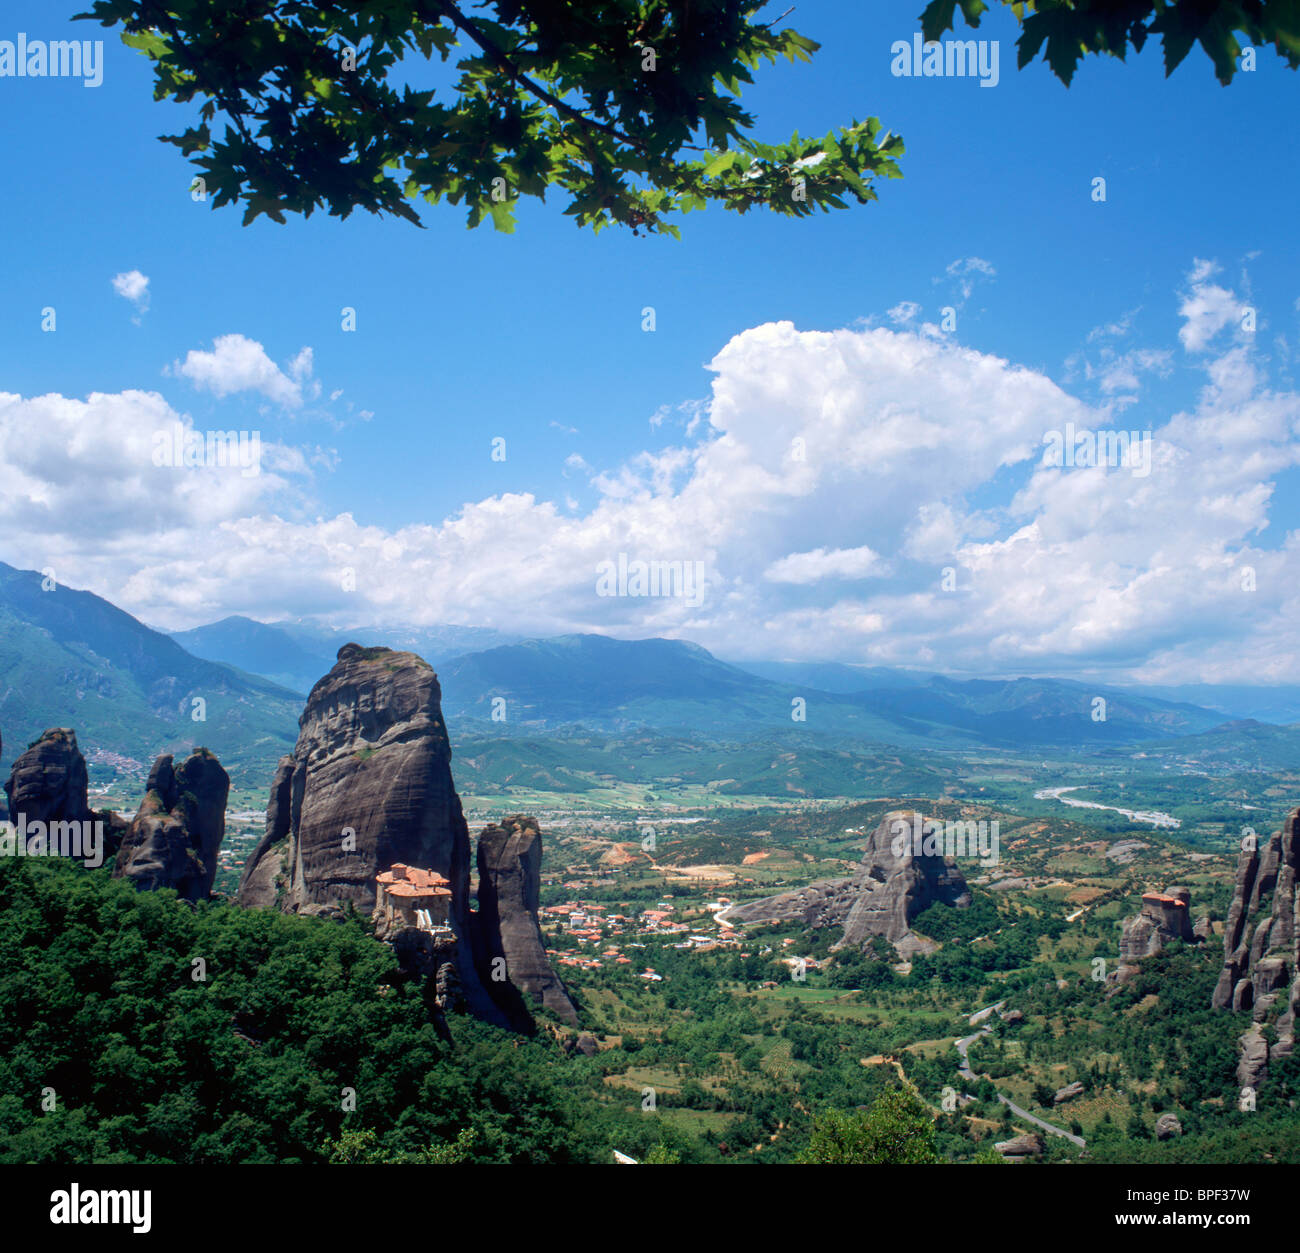 Monasteries of Meteora (Location for James Bond For Your Eyes Only), Thessalia, Greek Mainland, Greece - Stock Image